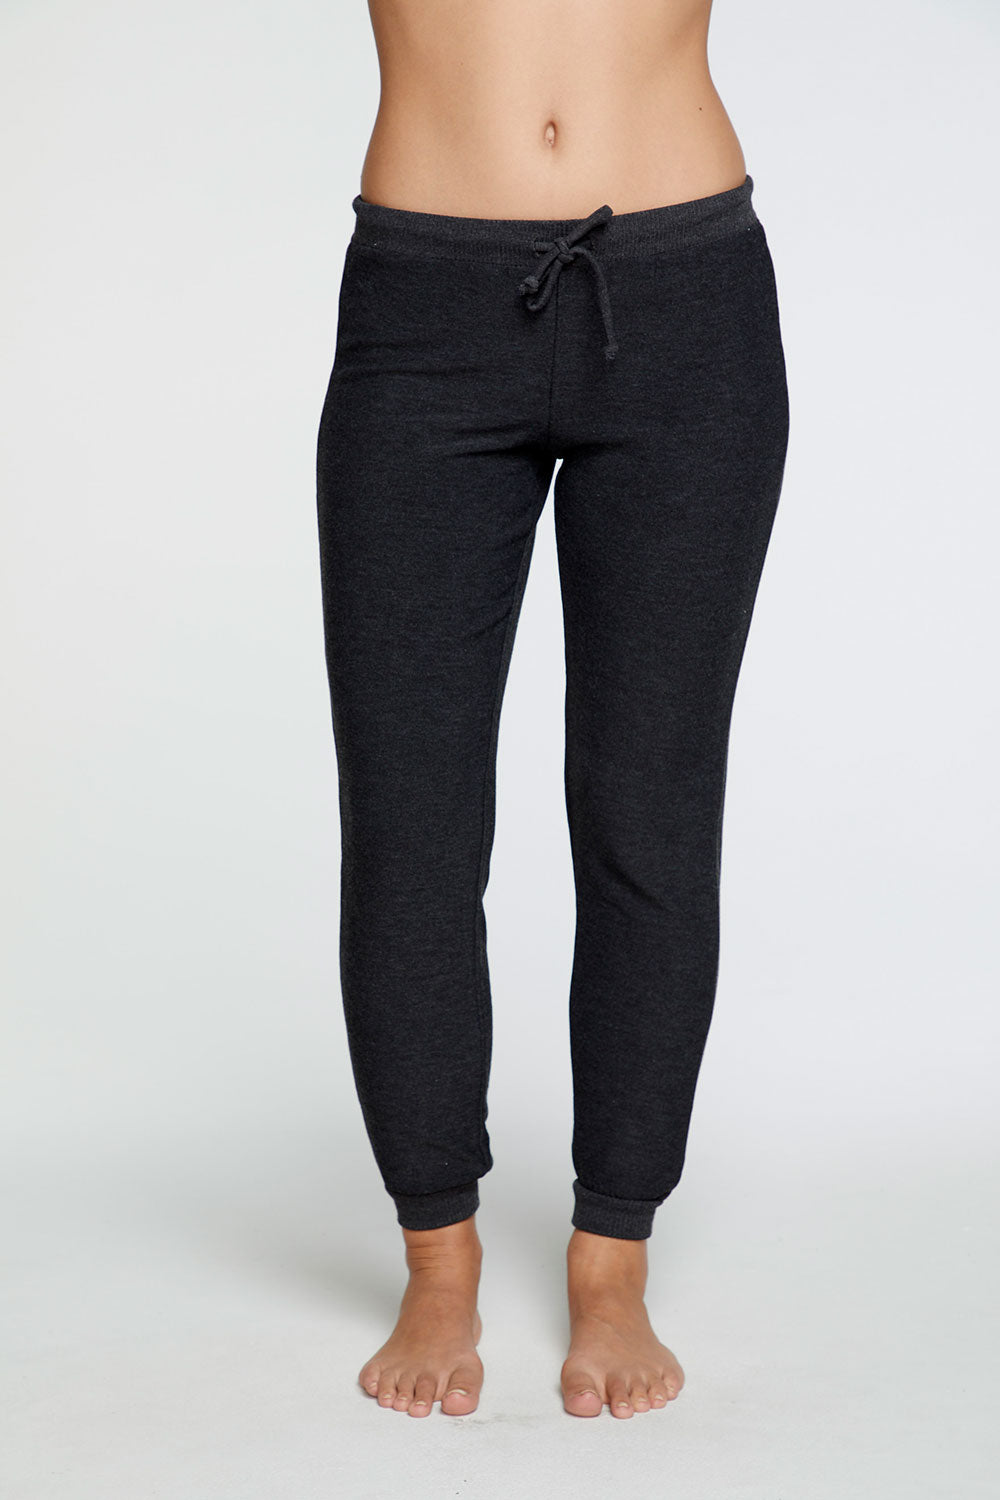 Vacay Vibe Joggers WOMENS chaserbrand4.myshopify.com